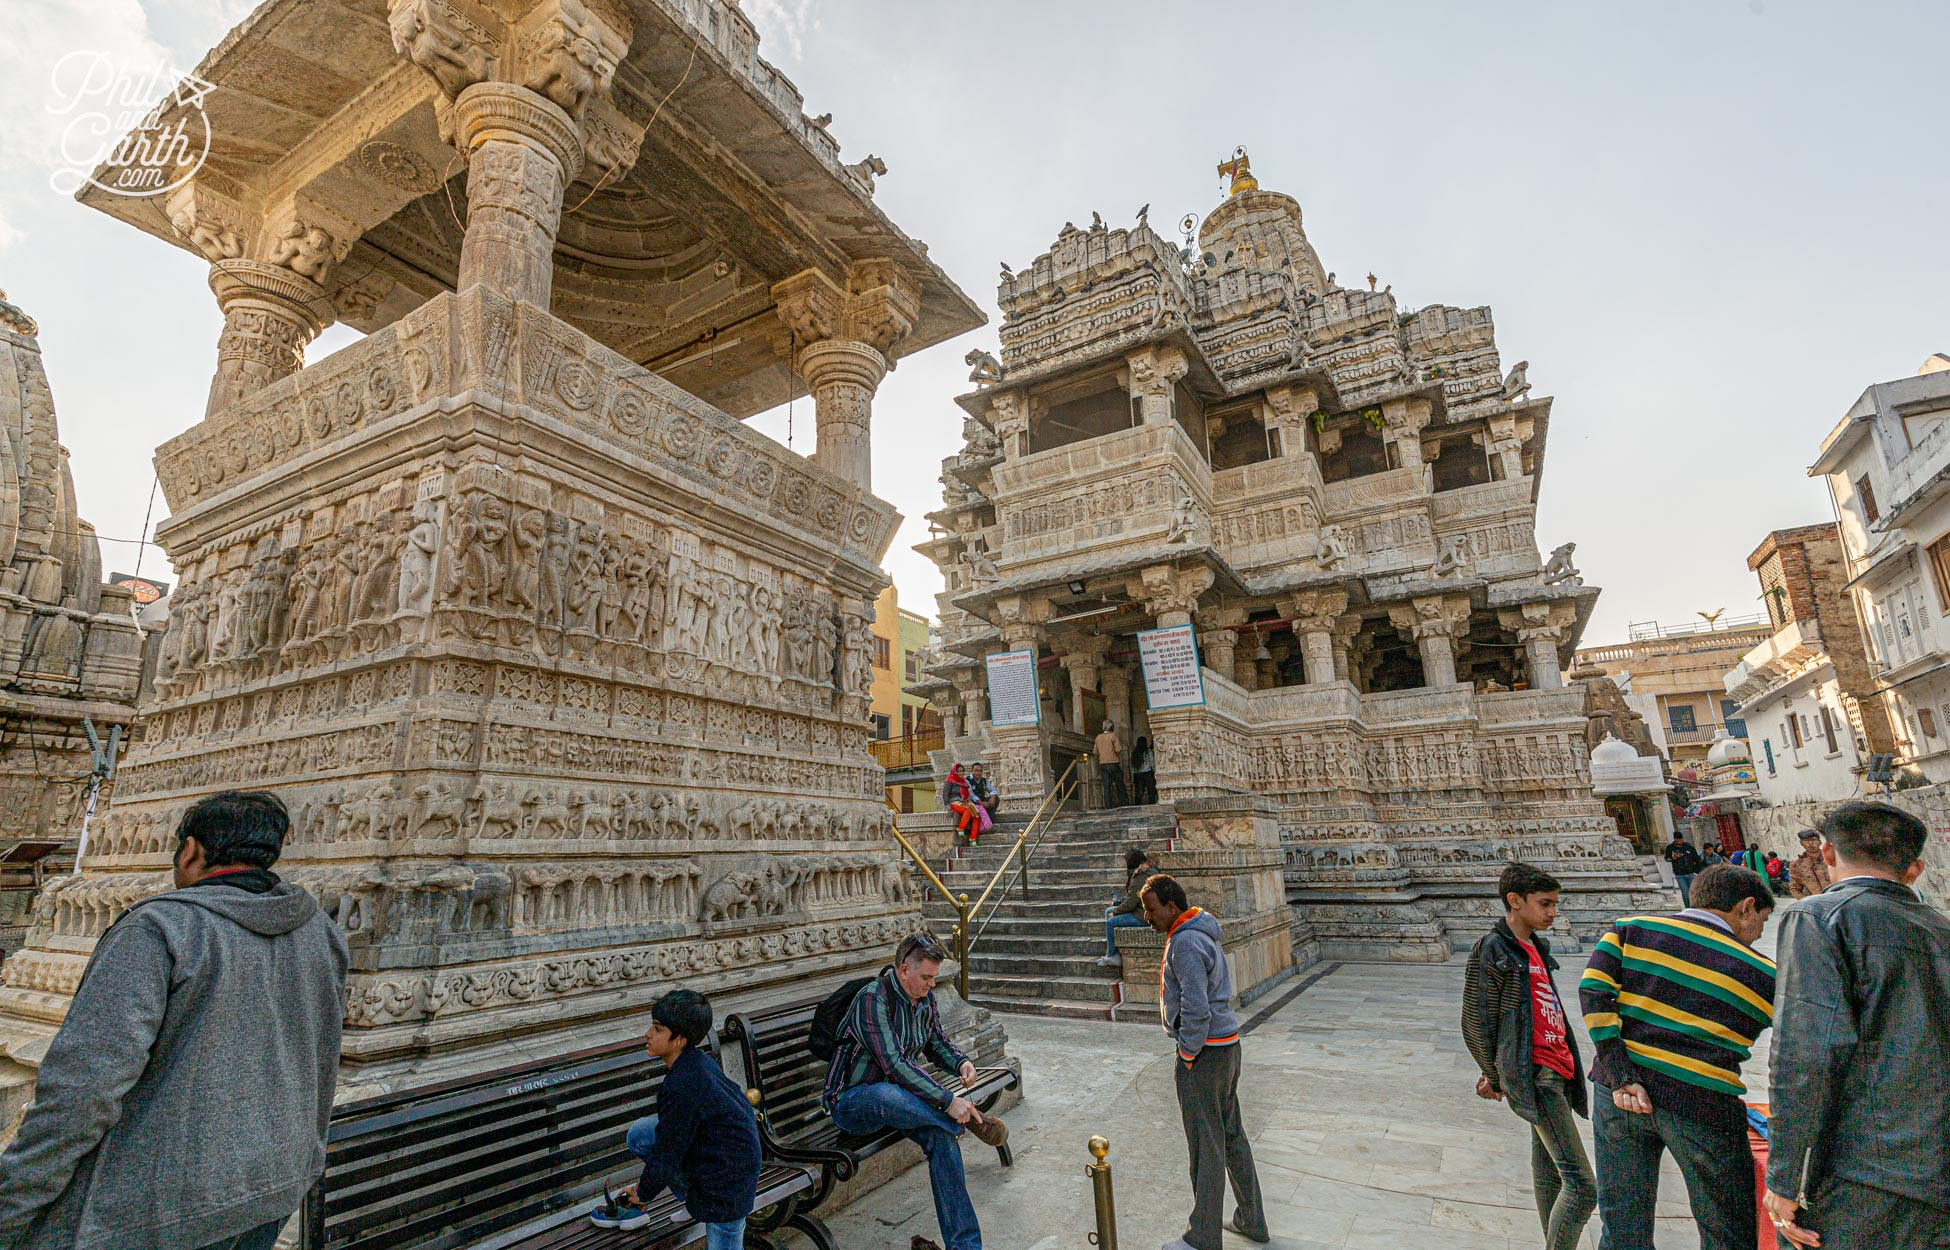 The Jagdish Temple was built in 1651